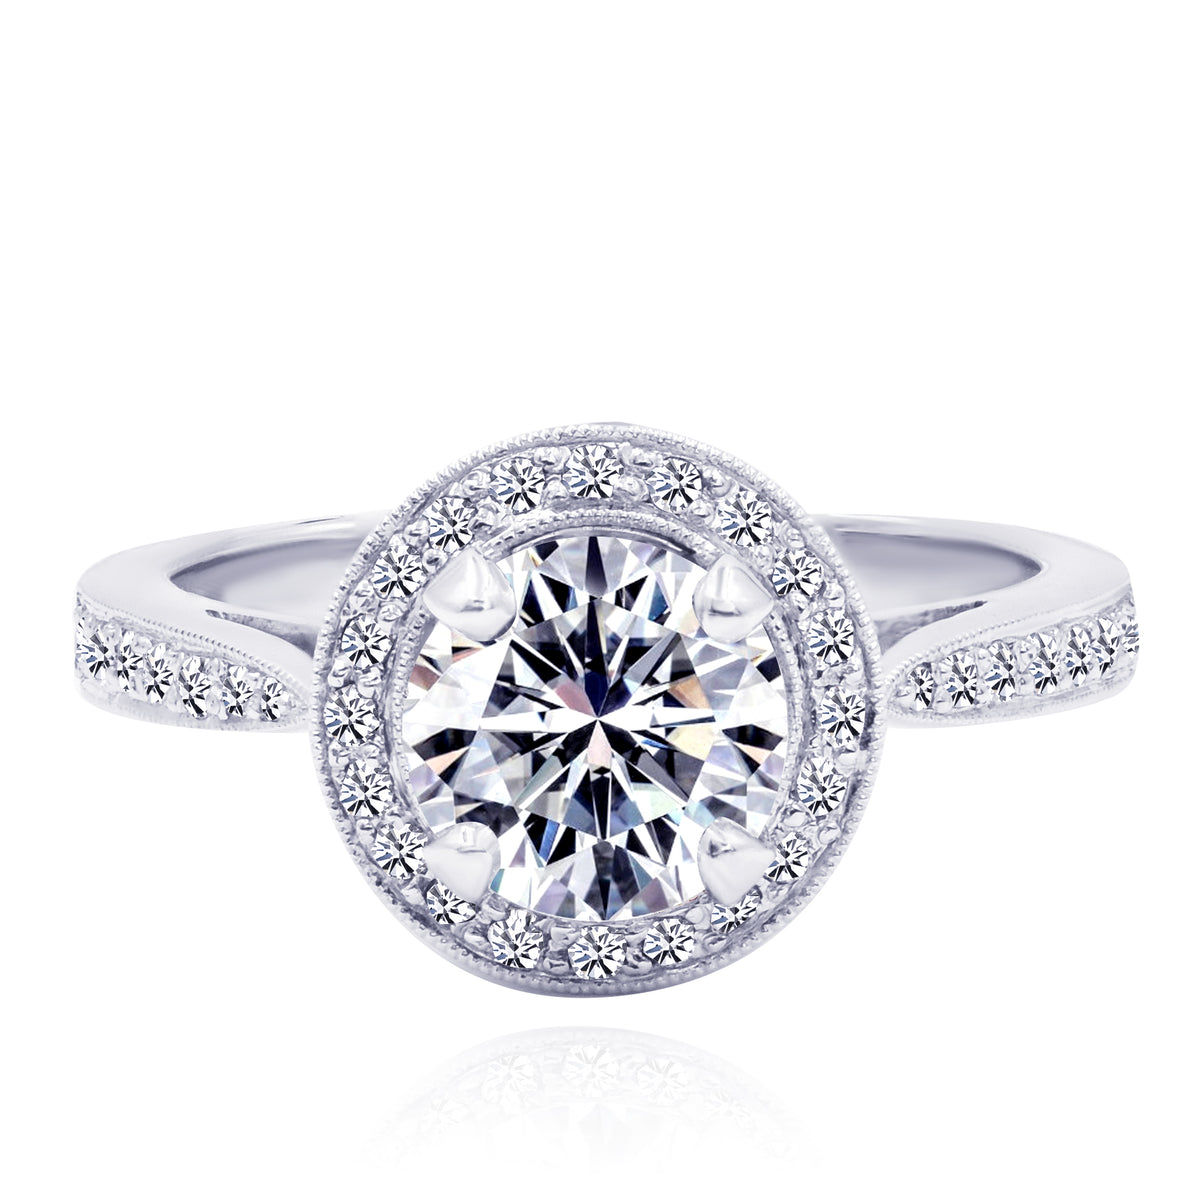 18K White Gold Diamond Halo Ring with Round Brilliant Cut Center